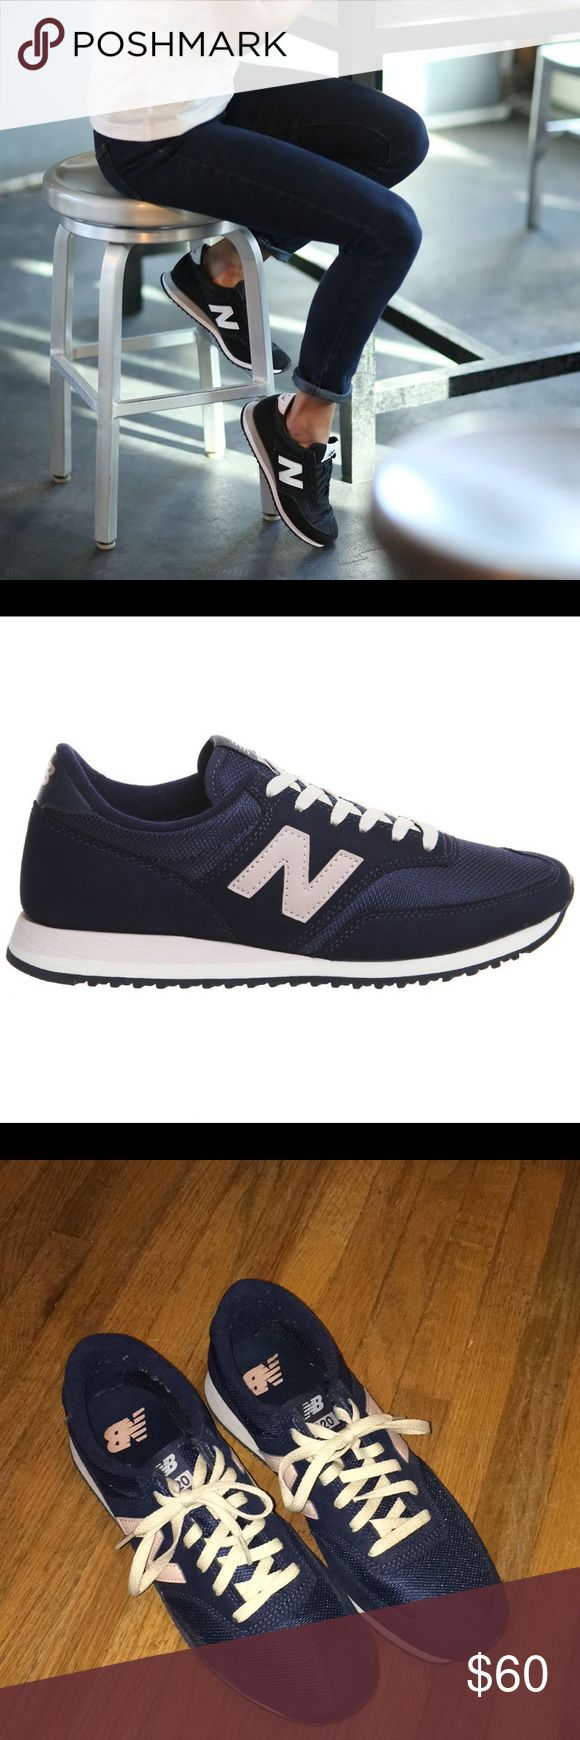 New Balance 620 sneakers Worn twice, purchased from the New Balance Store. These are navy blue with soft pink details and white laces. Very feminine and classic! No flaws besides having been worn a couple times. New Balance Shoes Athletic Shoes